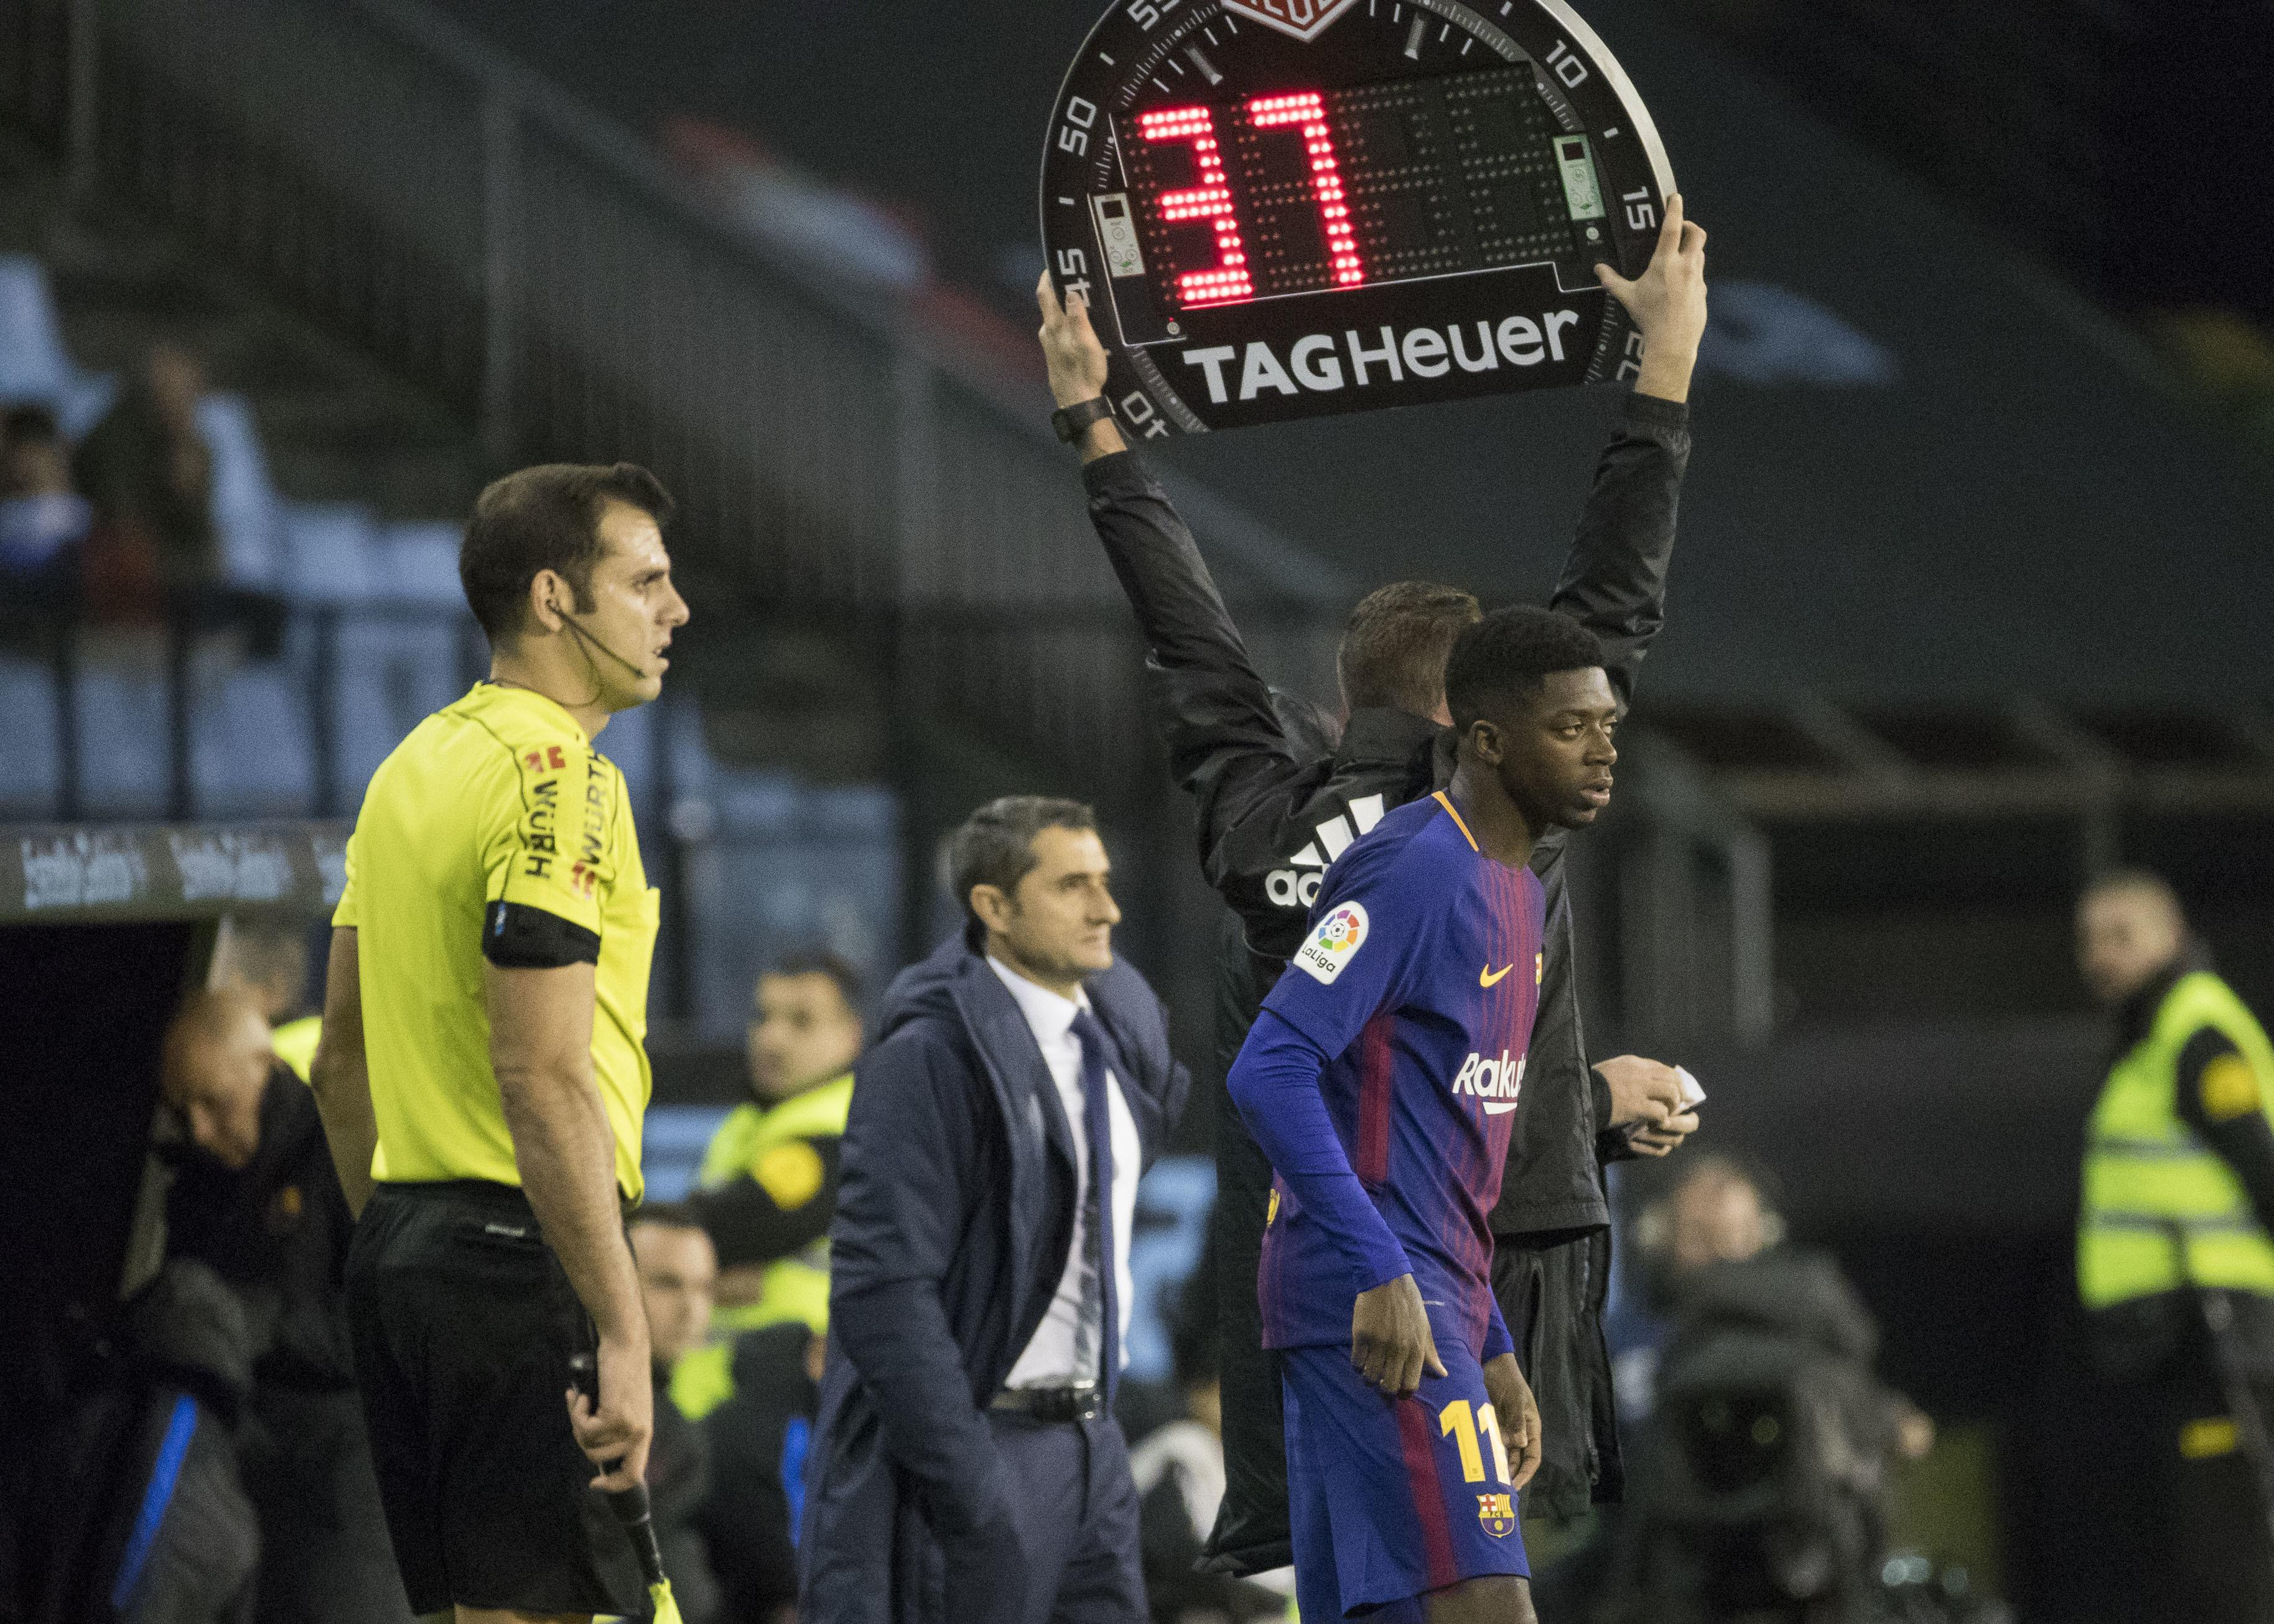 Dembele made his long-awaited return against Celta less than two weeks ago